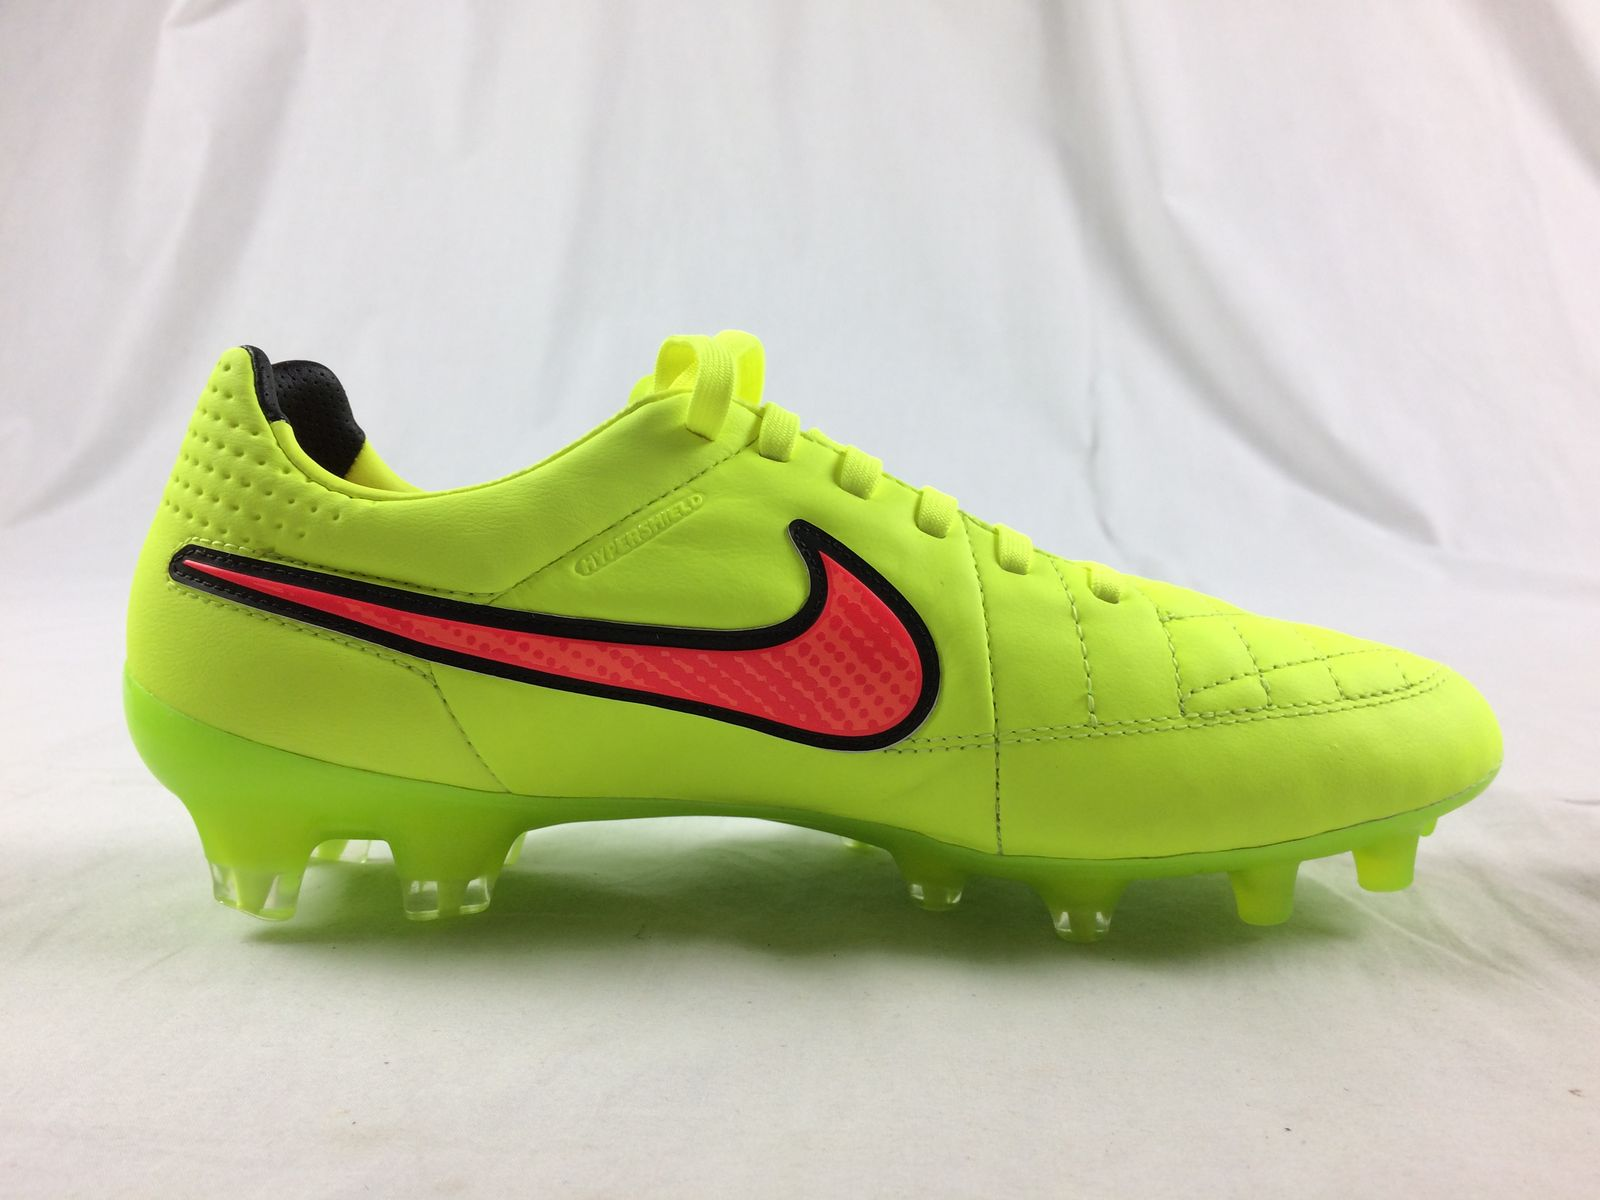 online retailer af056 07b45 ... amazon new nike tiempo legend v fg yellow green cleats mens 6.5 29020  29da1